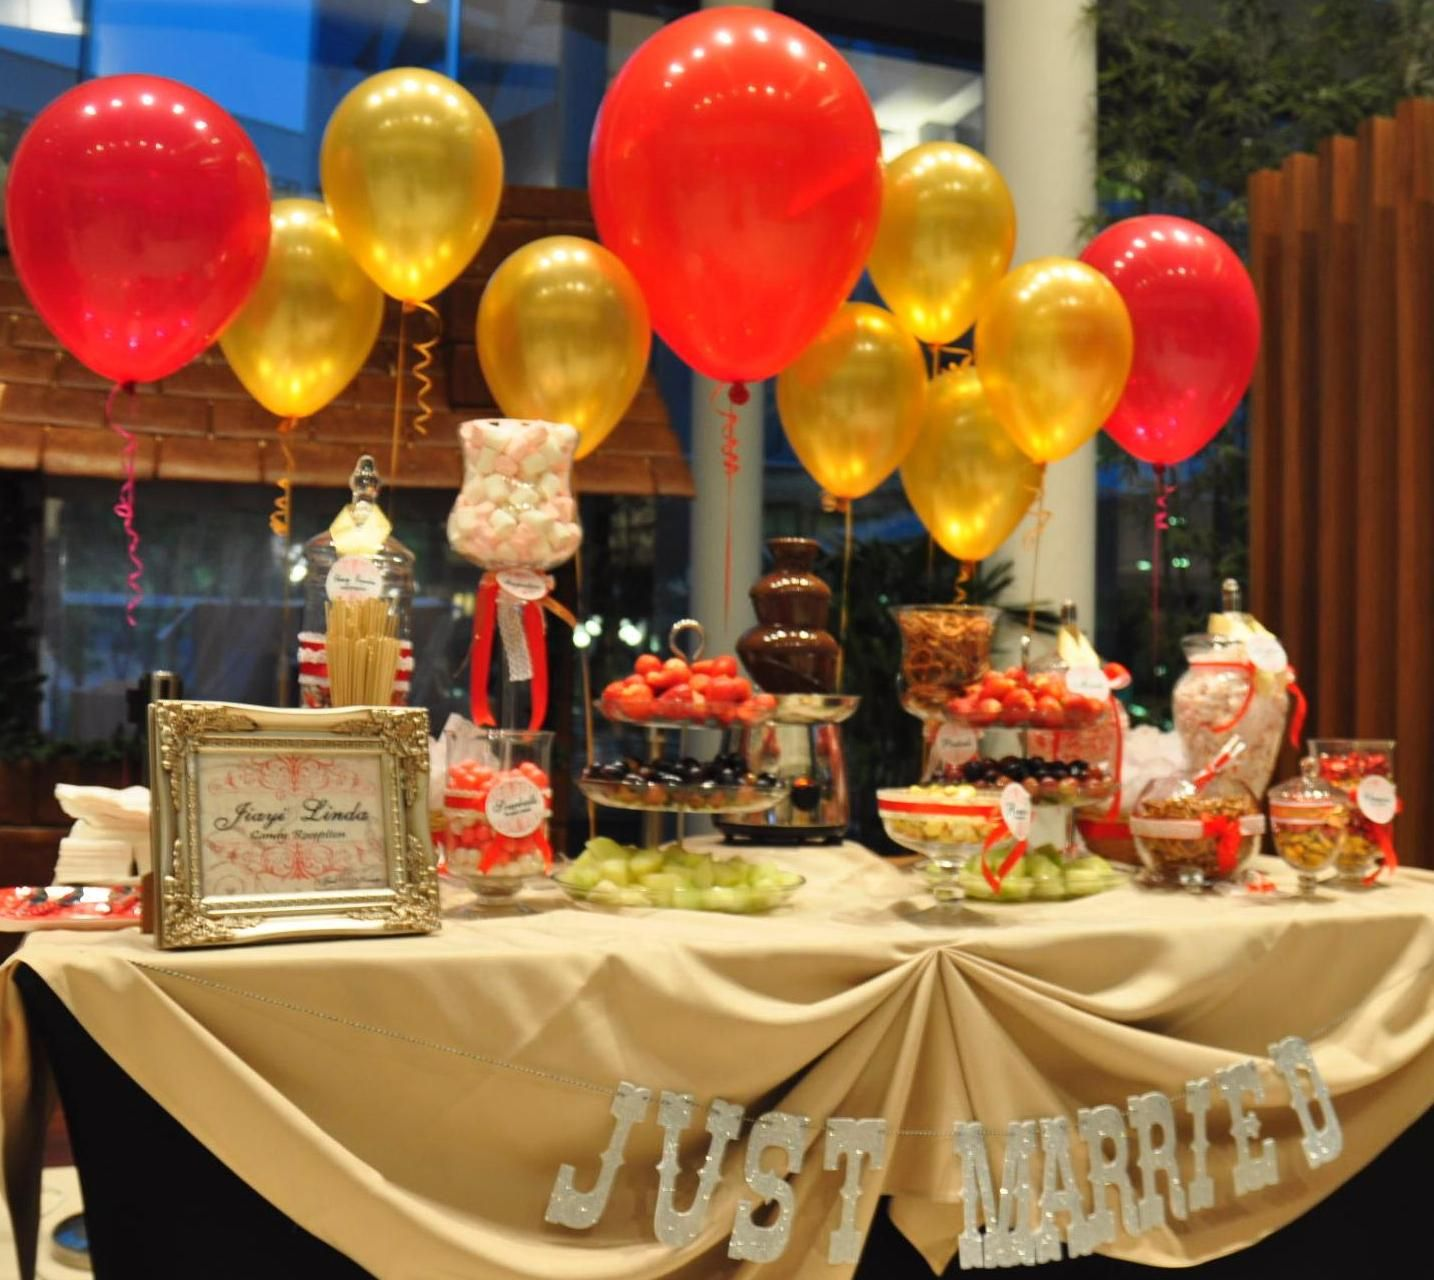 Table decoration for party - 9 Incredibly Awesome Ways To Add Balloons To An Indian Wedding Decor Bollywoodshaadis Com